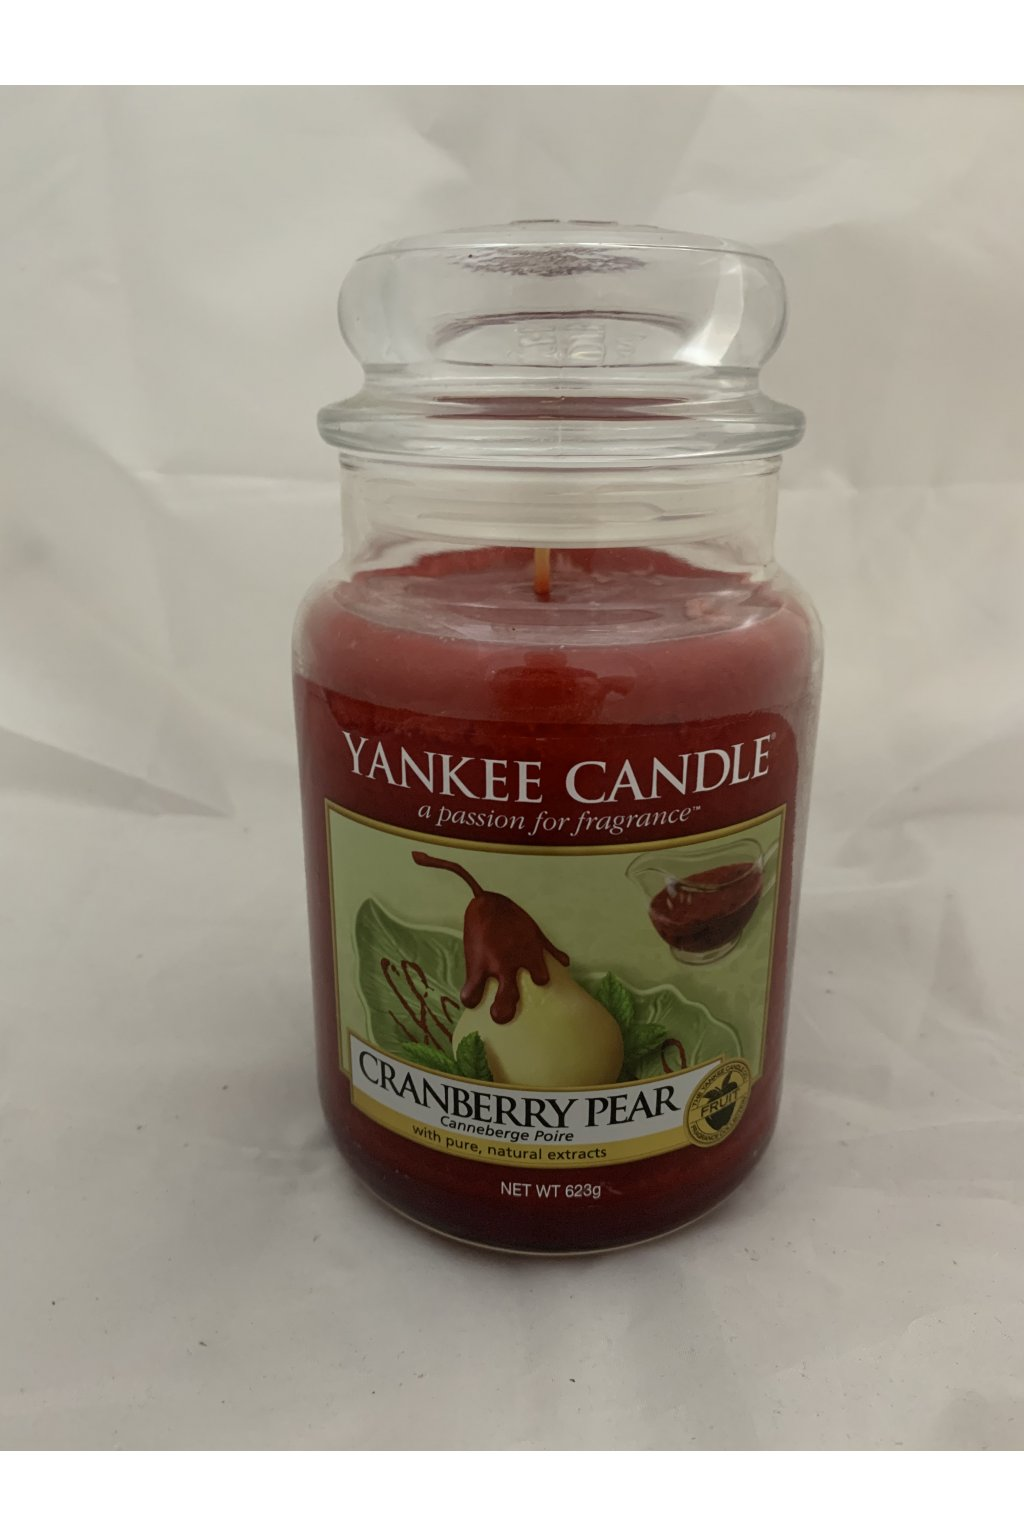 Yankee Candle Cranberry Pear 623g 2016 USA